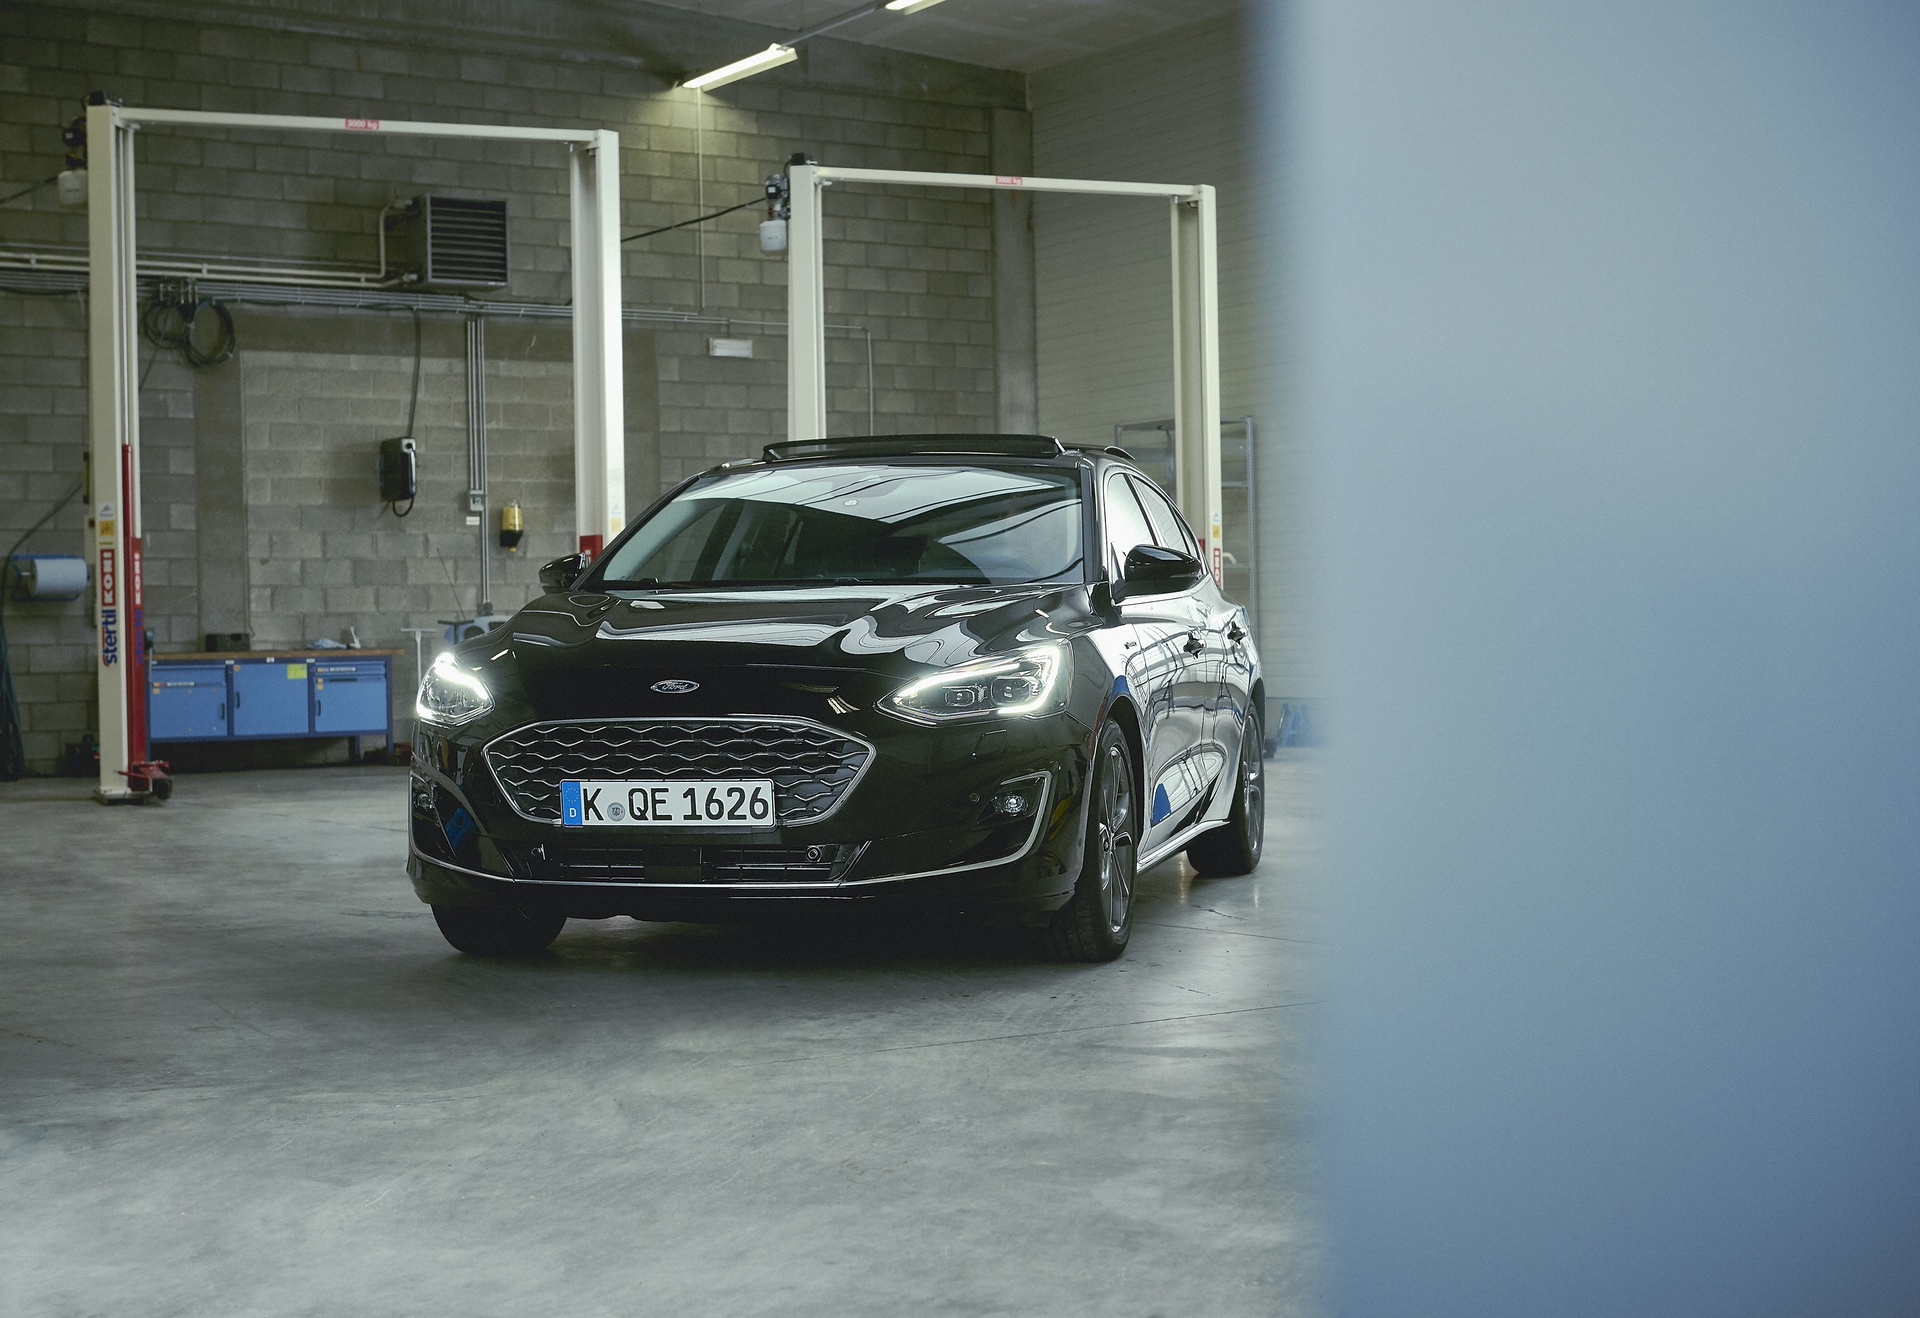 Innovative Pothole Detection System Irons Out the Bumps for All-New Ford Focus Drivers